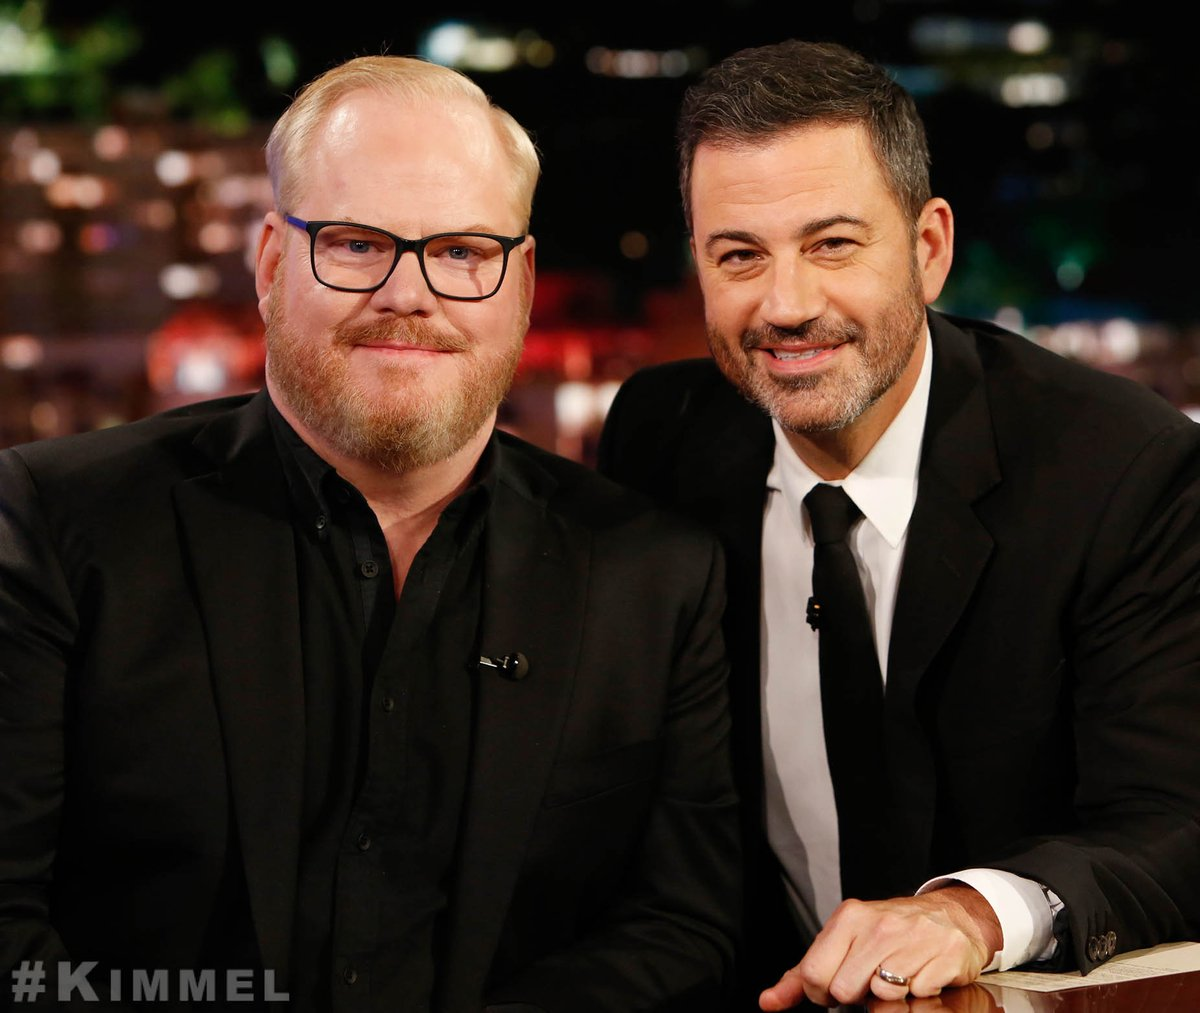 A prolific creator of both comedy specials and people! @JimGaffigan #QualityTime <br>http://pic.twitter.com/k9N3gsKY7W